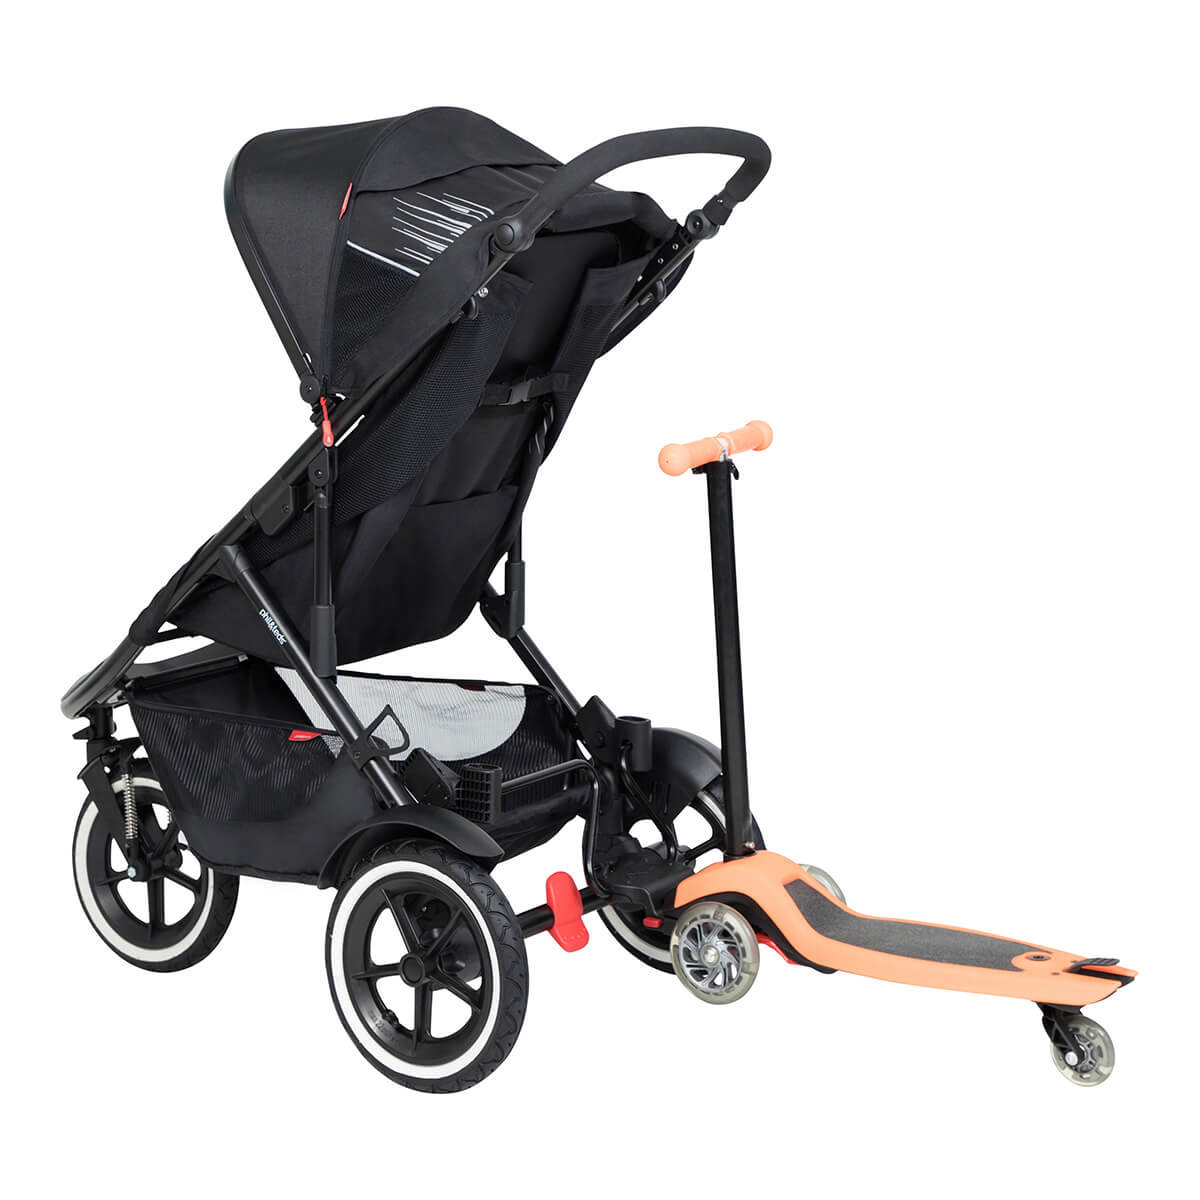 https://cdn.accentuate.io/4511392170081/19793940119722/philteds-sport-buggy-with-freerider-stroller-board-in-rear-v1626485309039.jpg?1200x1200